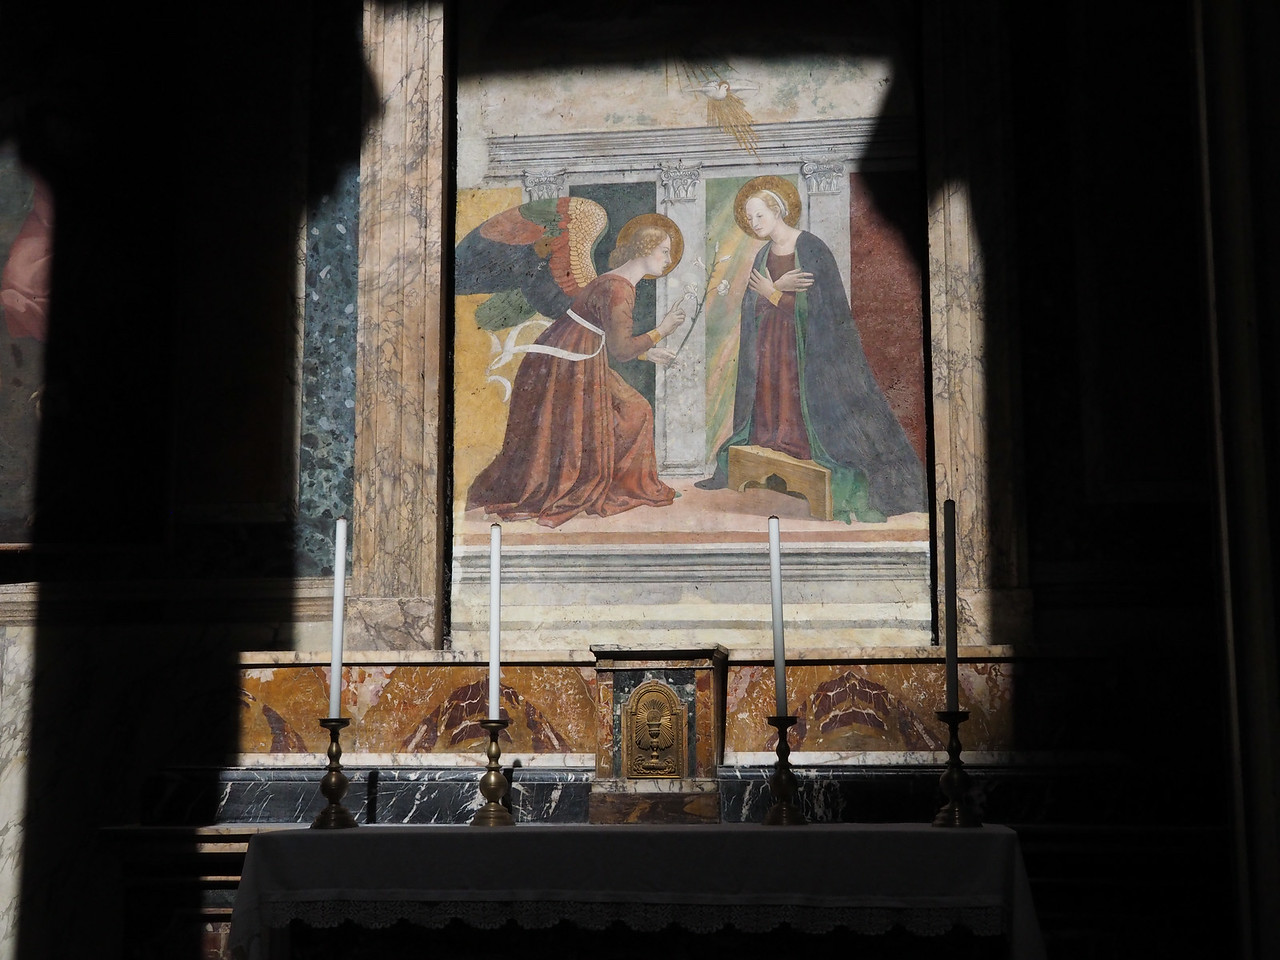 Annunciation from the Pantheon - Roman temple to all of the gods now a church